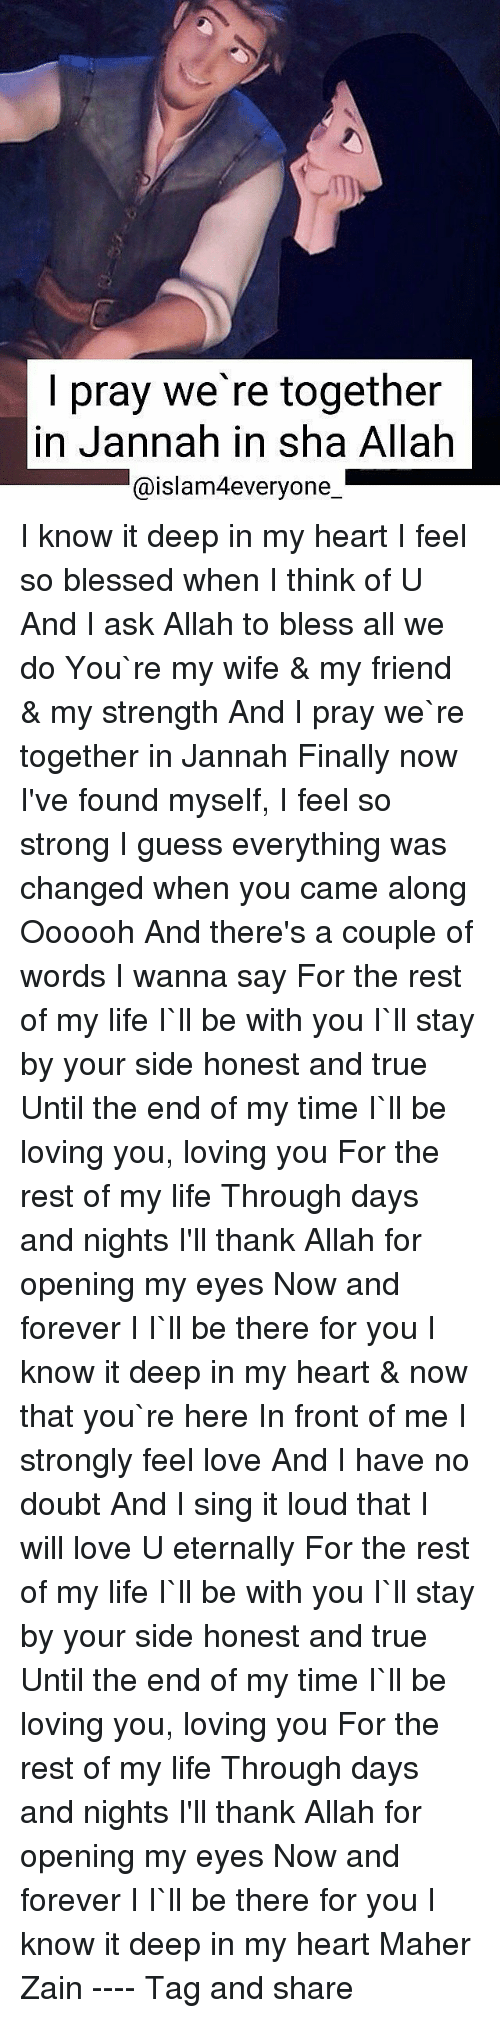 zain: I pray we're together  in Jannah in sha Allah  aislam4everyone I know it deep in my heart I feel so blessed when I think of U And I ask Allah to bless all we do You`re my wife & my friend & my strength And I pray we`re together in Jannah Finally now I've found myself, I feel so strong I guess everything was changed when you came along Oooooh And there's a couple of words I wanna say For the rest of my life I`ll be with you I`ll stay by your side honest and true Until the end of my time I`ll be loving you, loving you For the rest of my life Through days and nights I'll thank Allah for opening my eyes Now and forever I I`ll be there for you I know it deep in my heart & now that you`re here In front of me I strongly feel love And I have no doubt And I sing it loud that I will love U eternally For the rest of my life I`ll be with you I`ll stay by your side honest and true Until the end of my time I`ll be loving you, loving you For the rest of my life Through days and nights I'll thank Allah for opening my eyes Now and forever I I`ll be there for you I know it deep in my heart Maher Zain ---- Tag and share